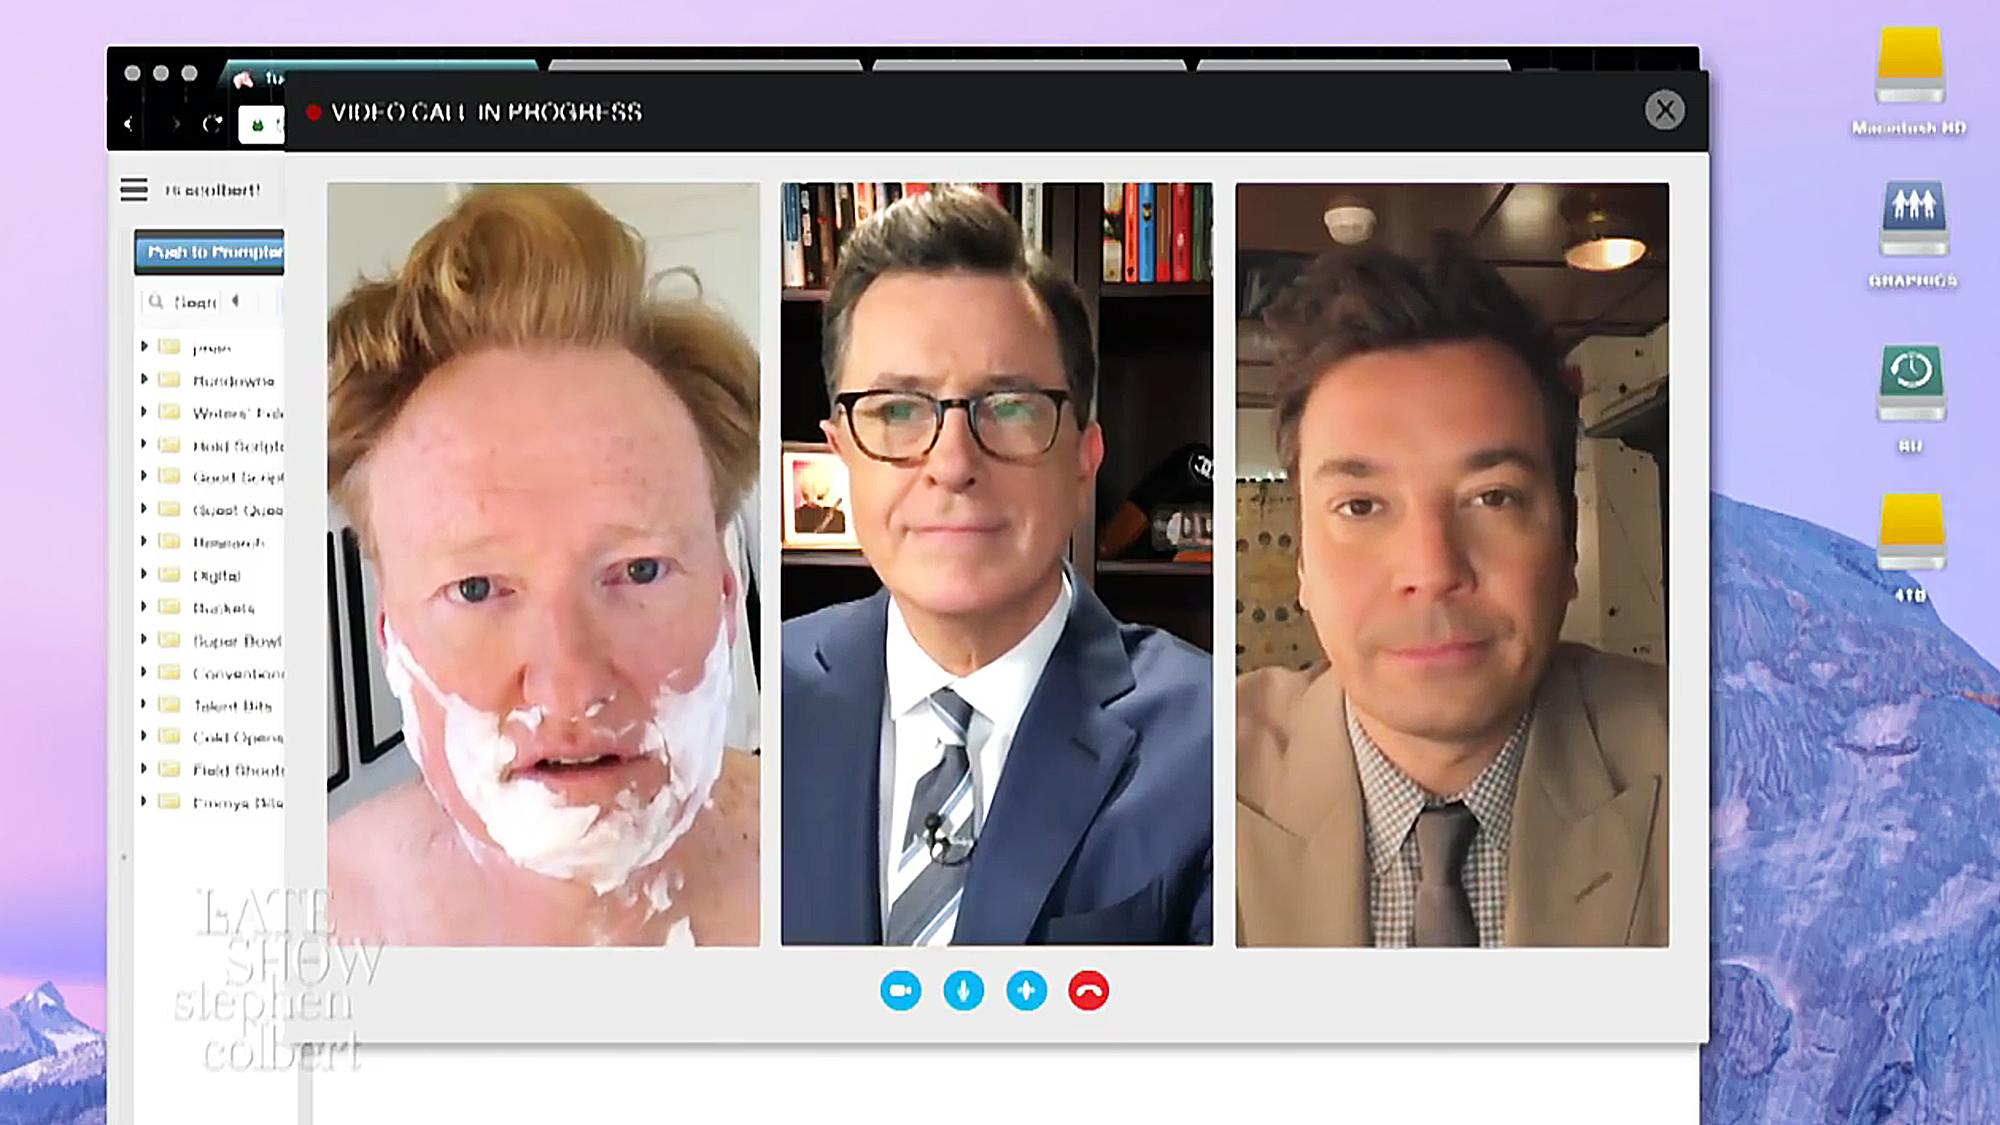 Colbert, Jimmy Fallon and Conan Join Forces for Trump Chat